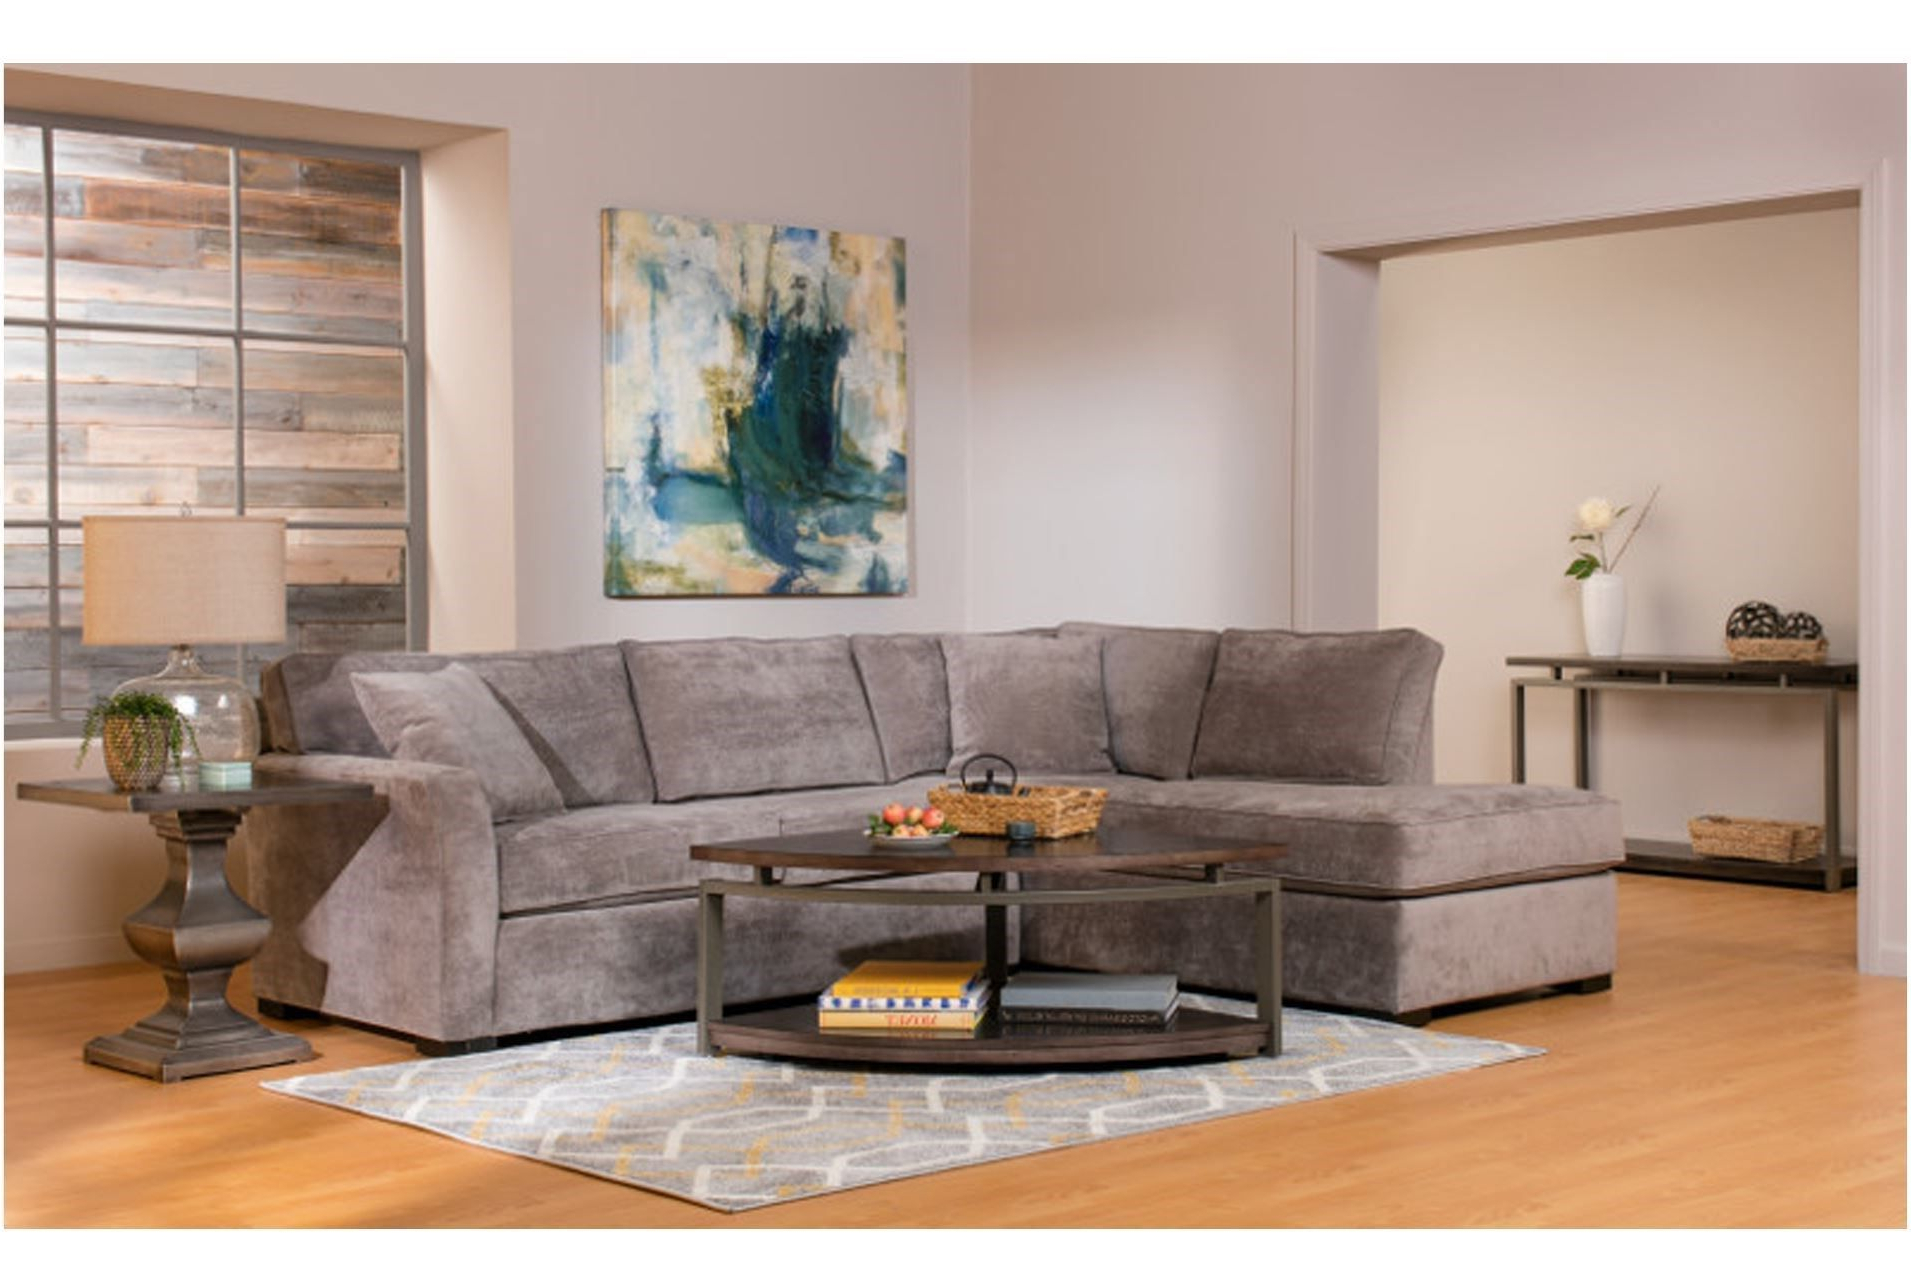 Most Popular Aspen 2 Piece Sleeper Sectionals With Raf Chaise In Aspen 2 Piece Sectional W/laf Chaise In  (View 10 of 20)